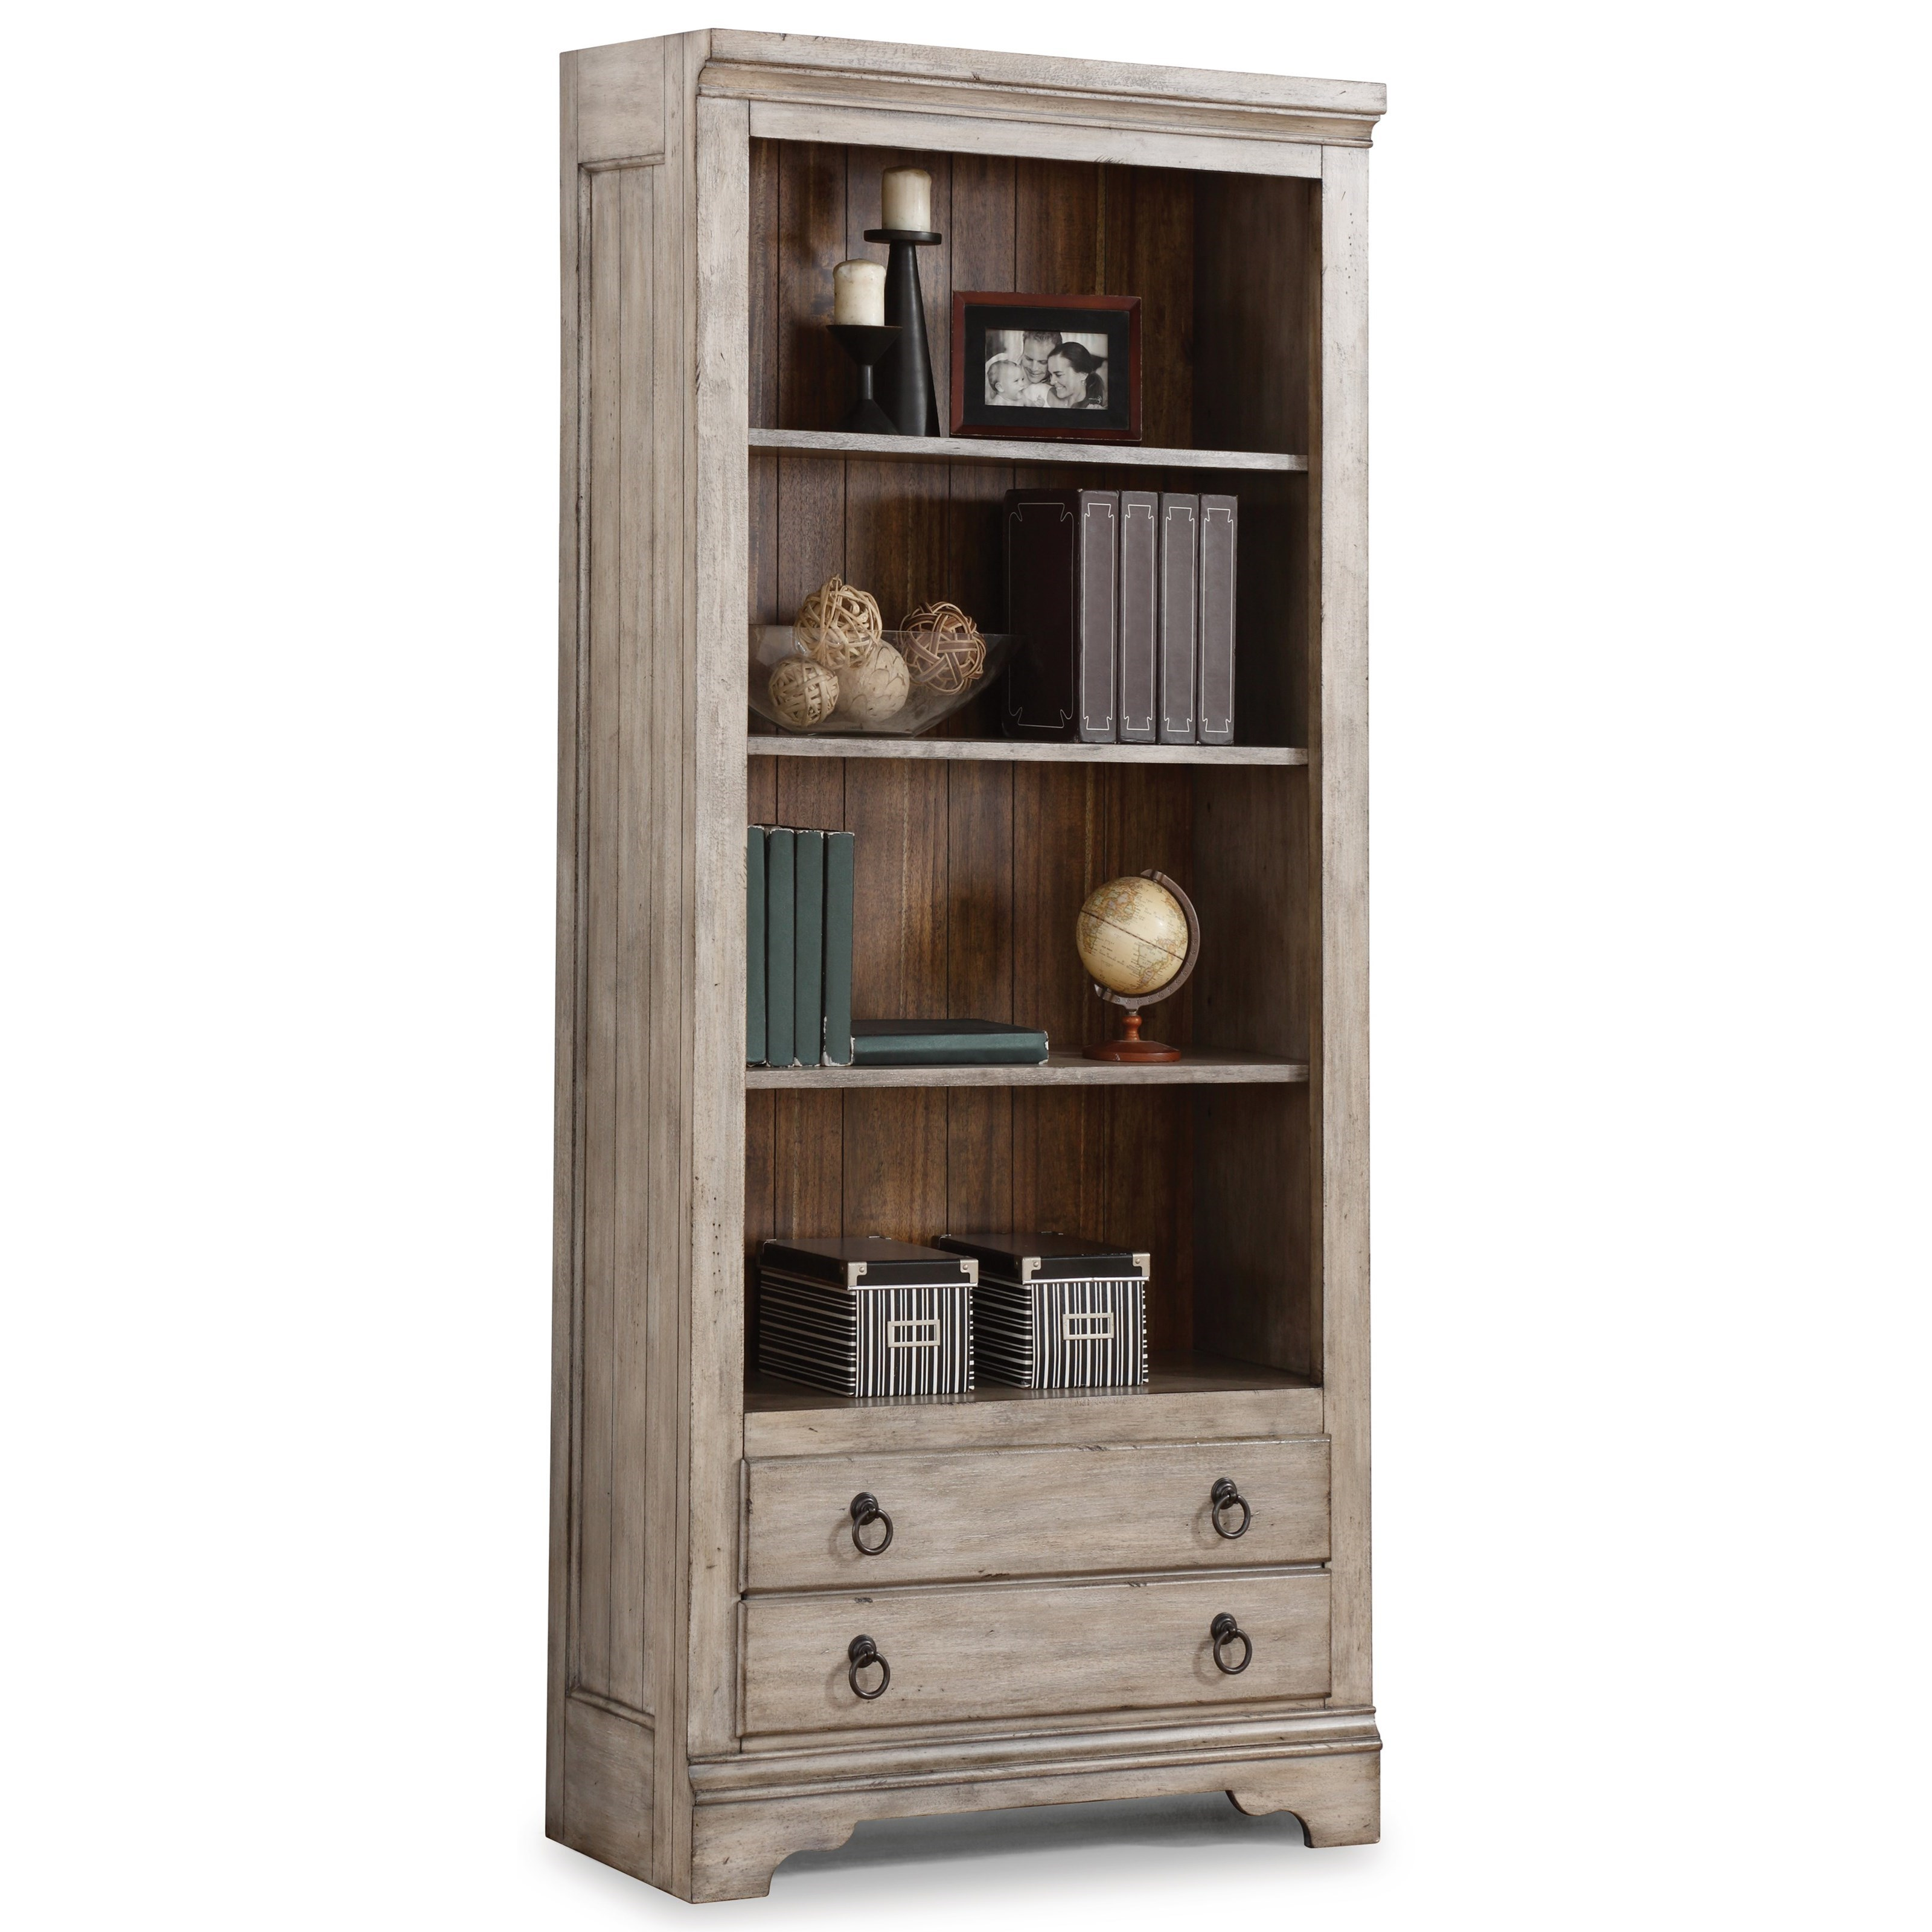 Flexsteel Wynwood Collection Plymouth Cottage File Bookcase With Four Open Shelves Olinde 39 S